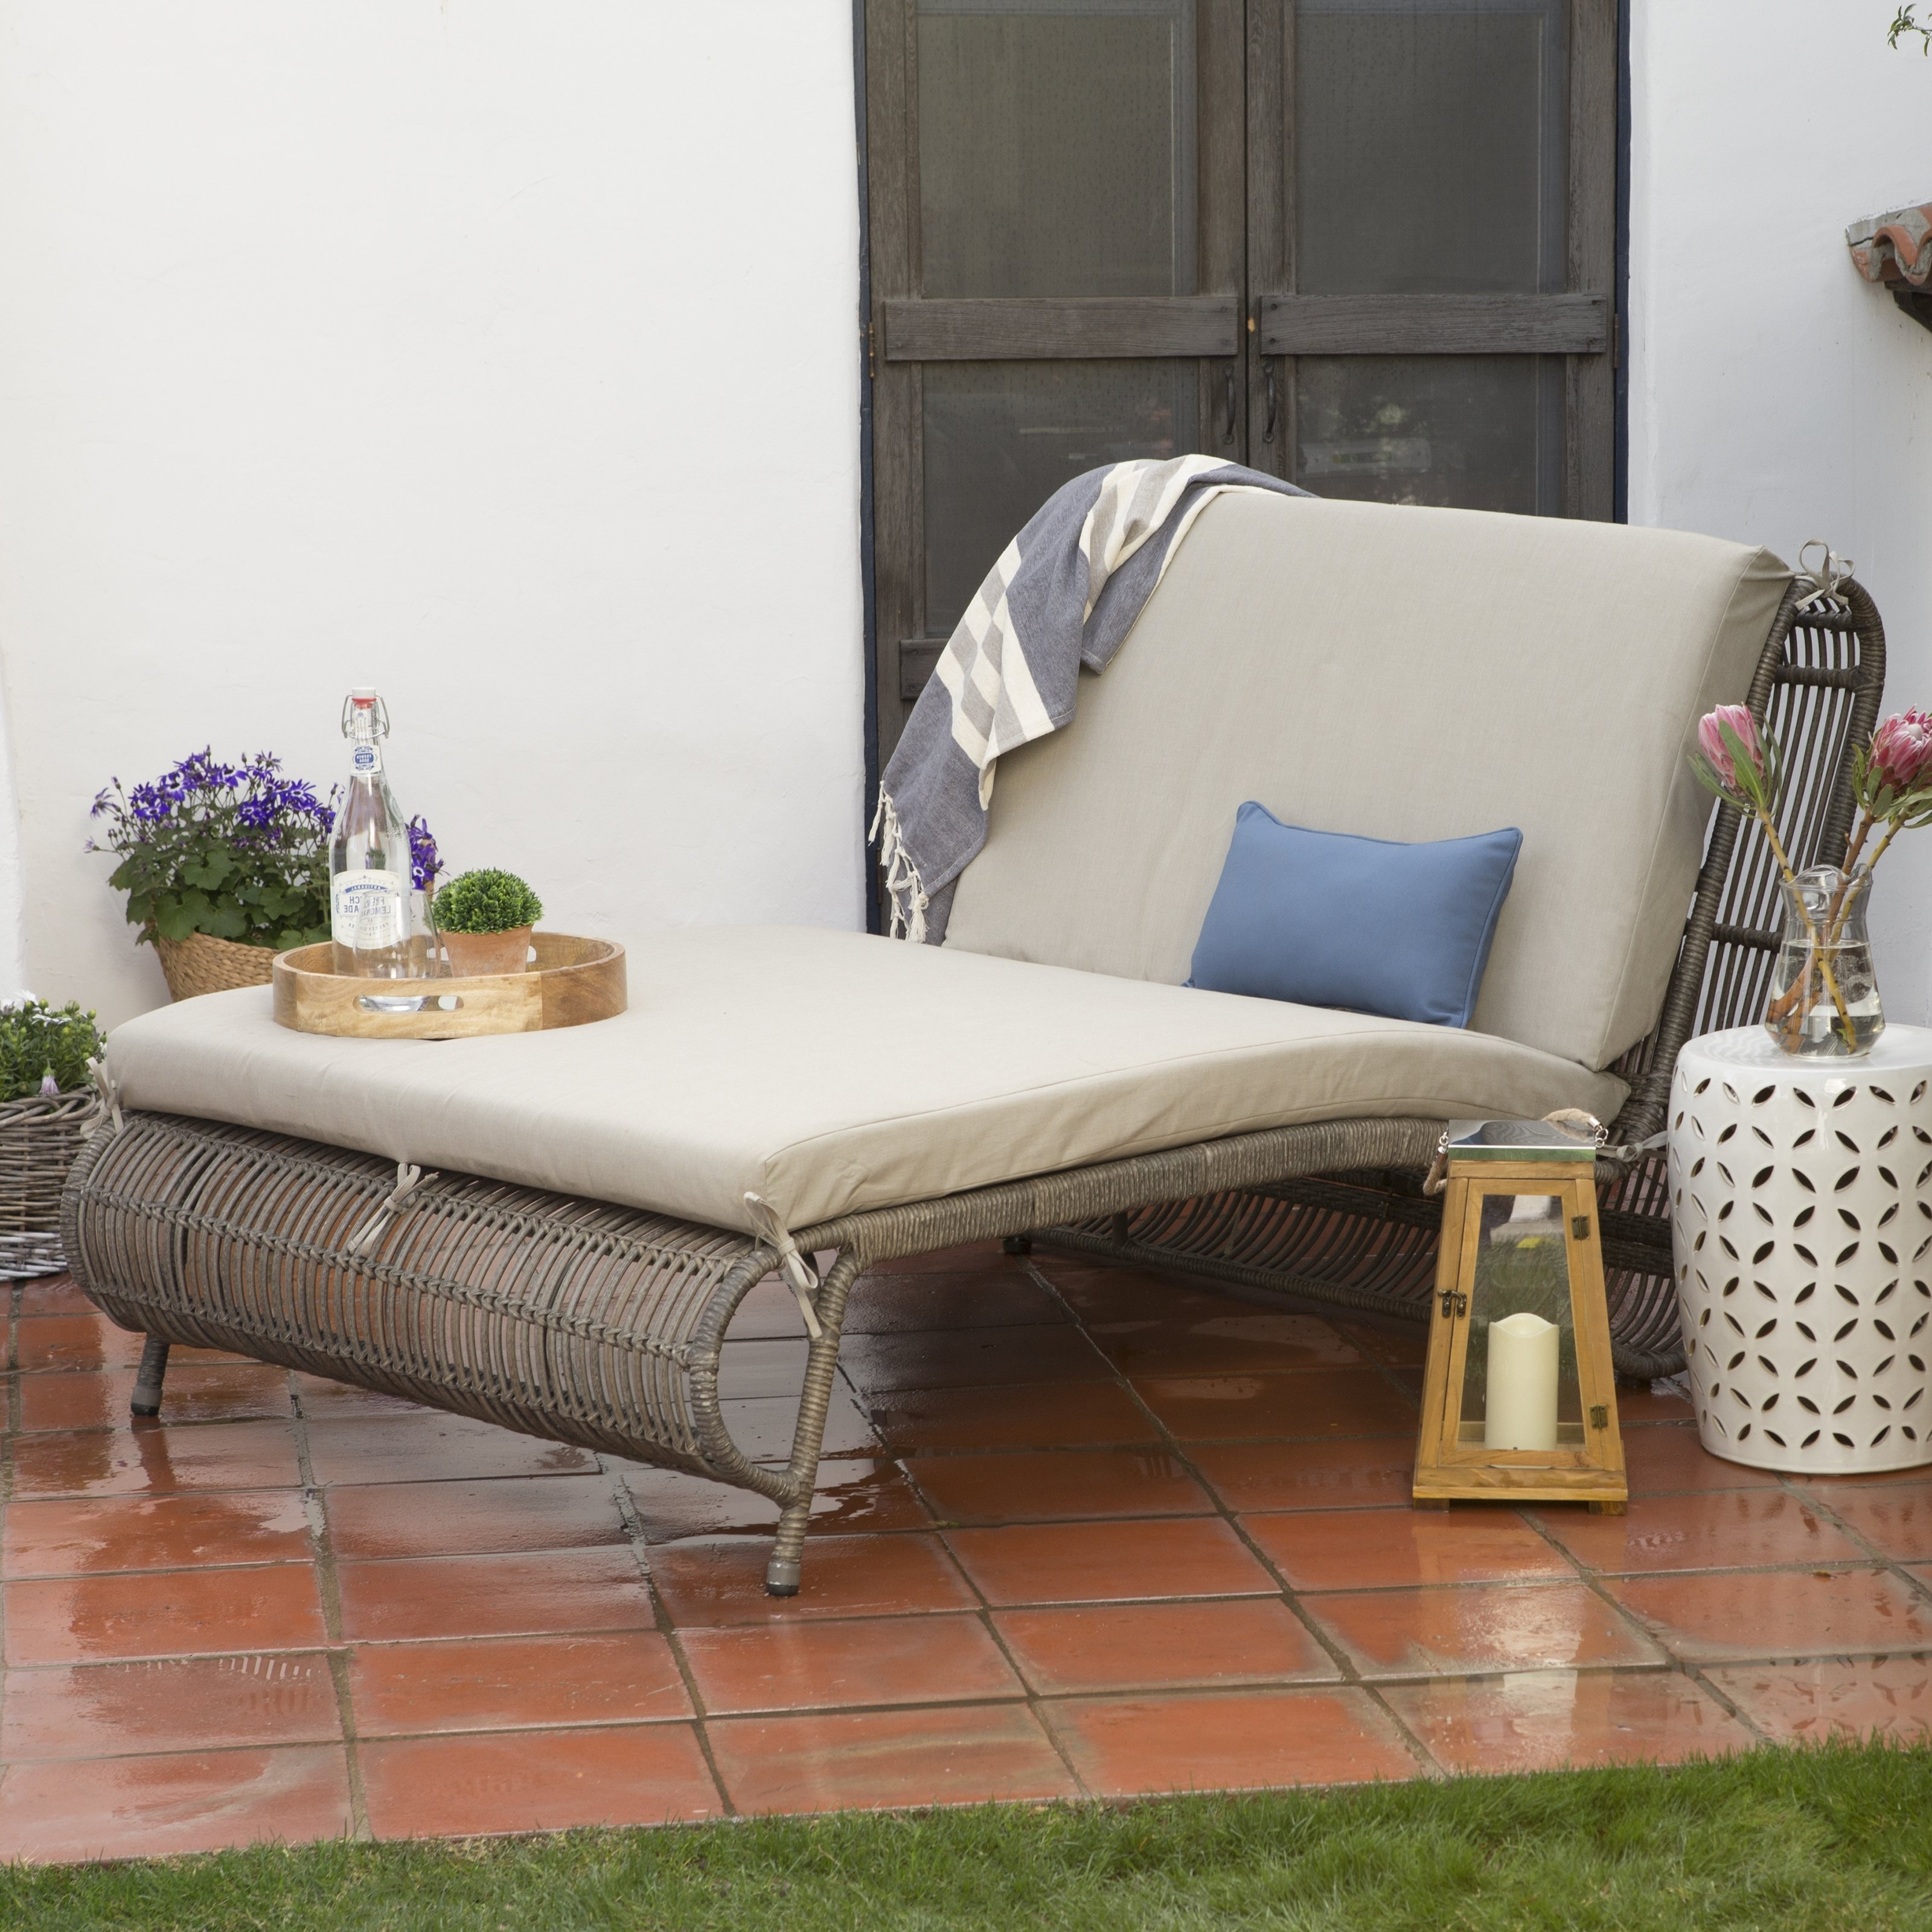 home wide lounge outdoor chairs double chaise chair oversized